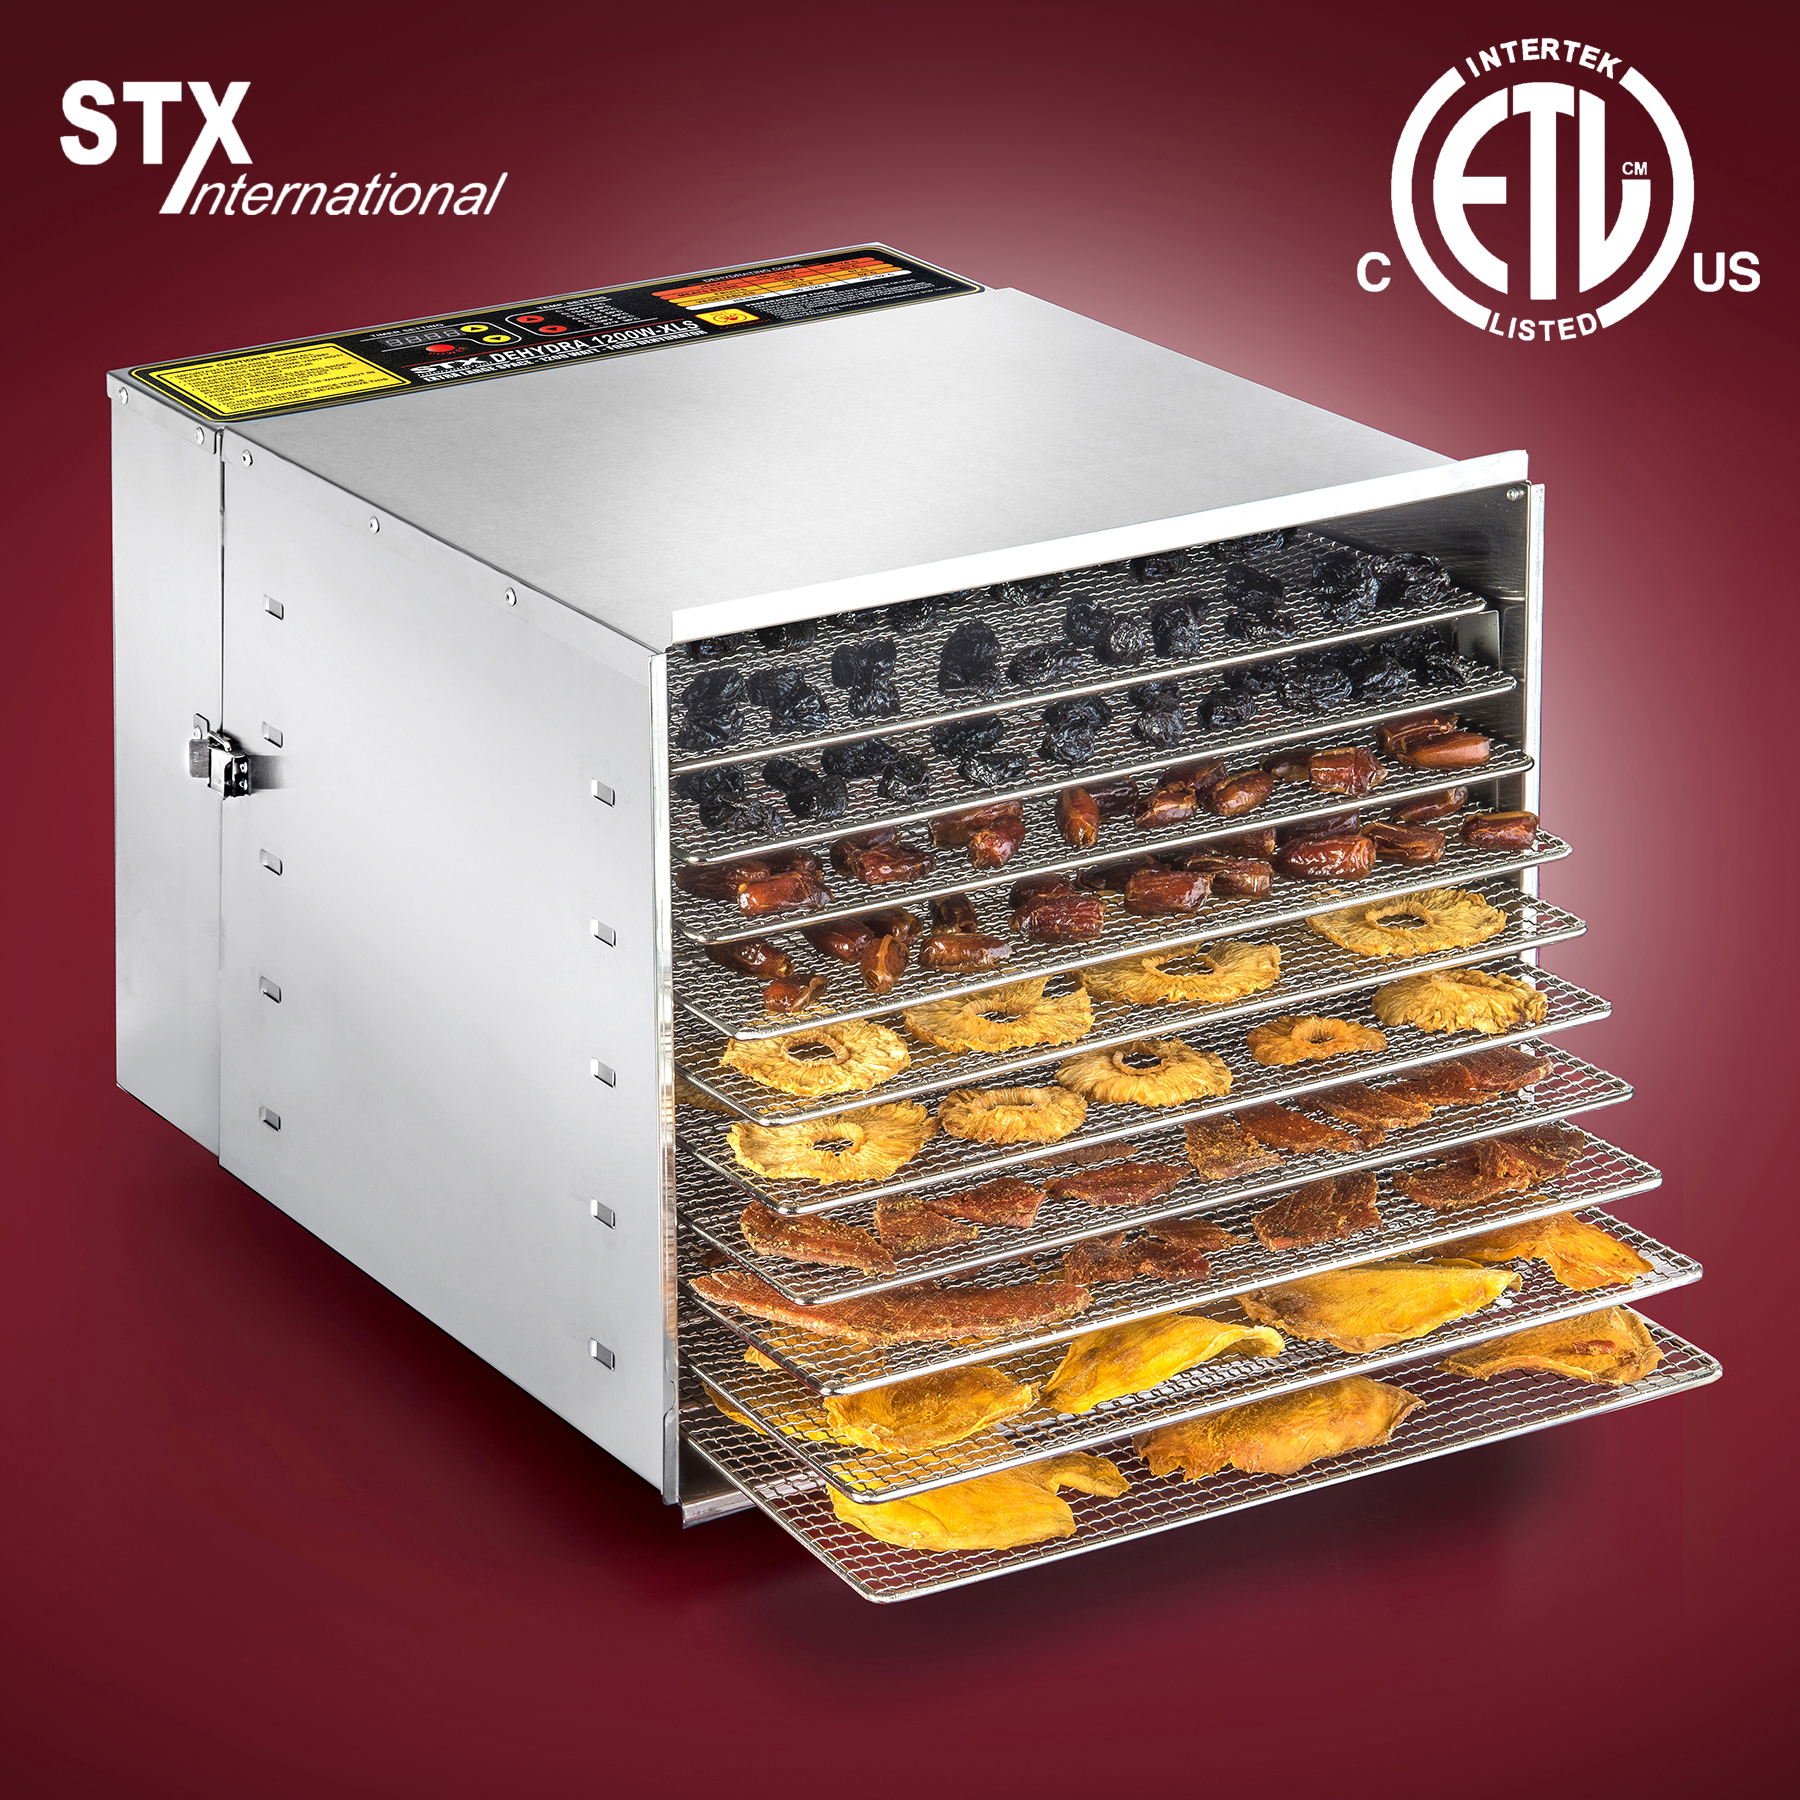 STX Dehydra 1200W-XLS 10 Tray Stainless Steel Food Dehydrator - 165°F Jerky Safe